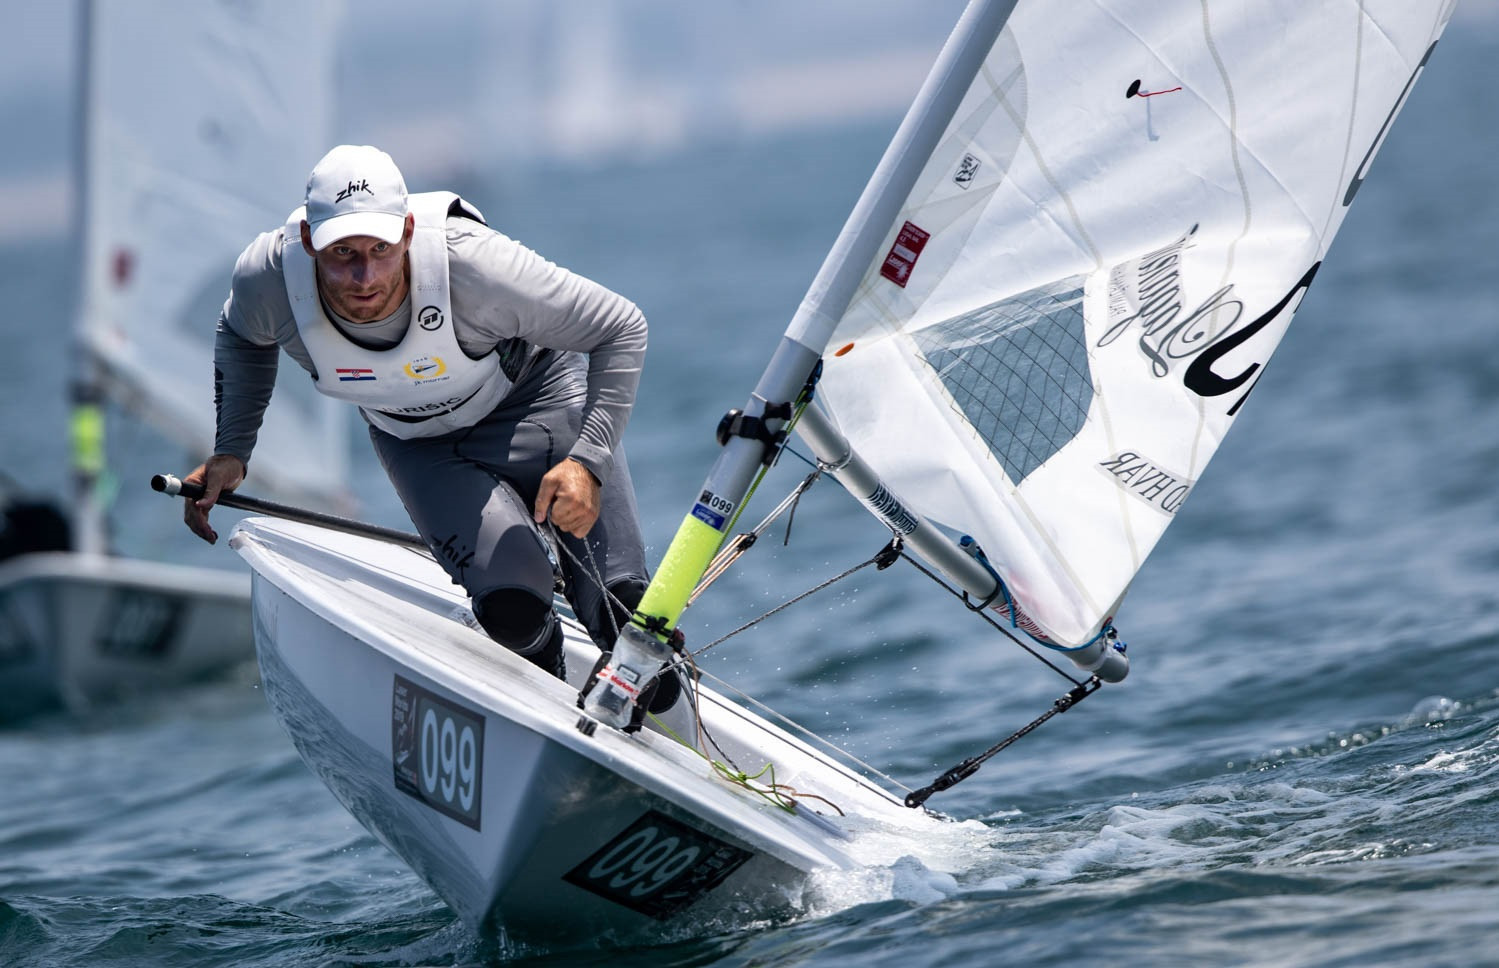 Jurišić and Gautrey tied for lead after day one of Laser Men's World Championship